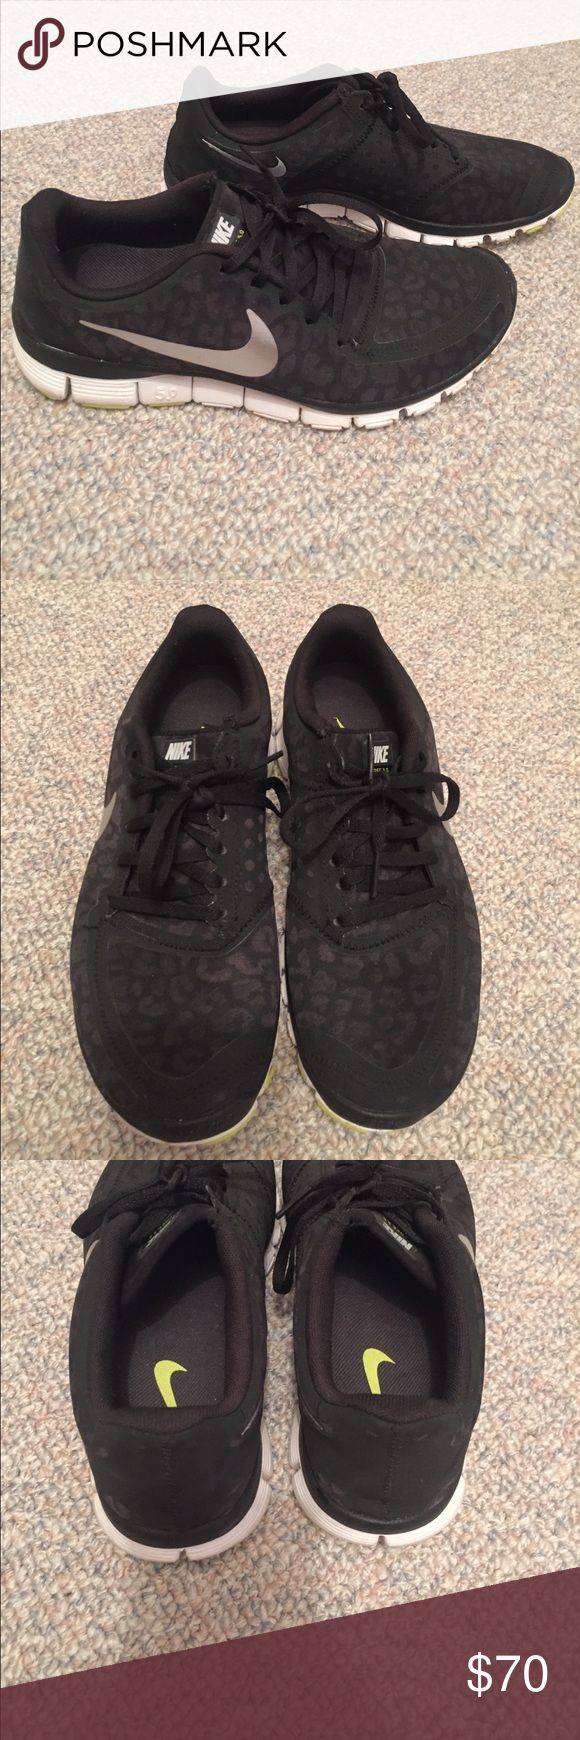 Nike free 5.0 cheetah shoes Black cheetah/leopard print Nike run 5.0 athletic shoes. These are limited edition and sold out super quick. Very lightly worn - only sign of wear is a little dirt on the bottoms which is shown in pictures. Ladies size 8 Nike Shoes Athletic Shoes